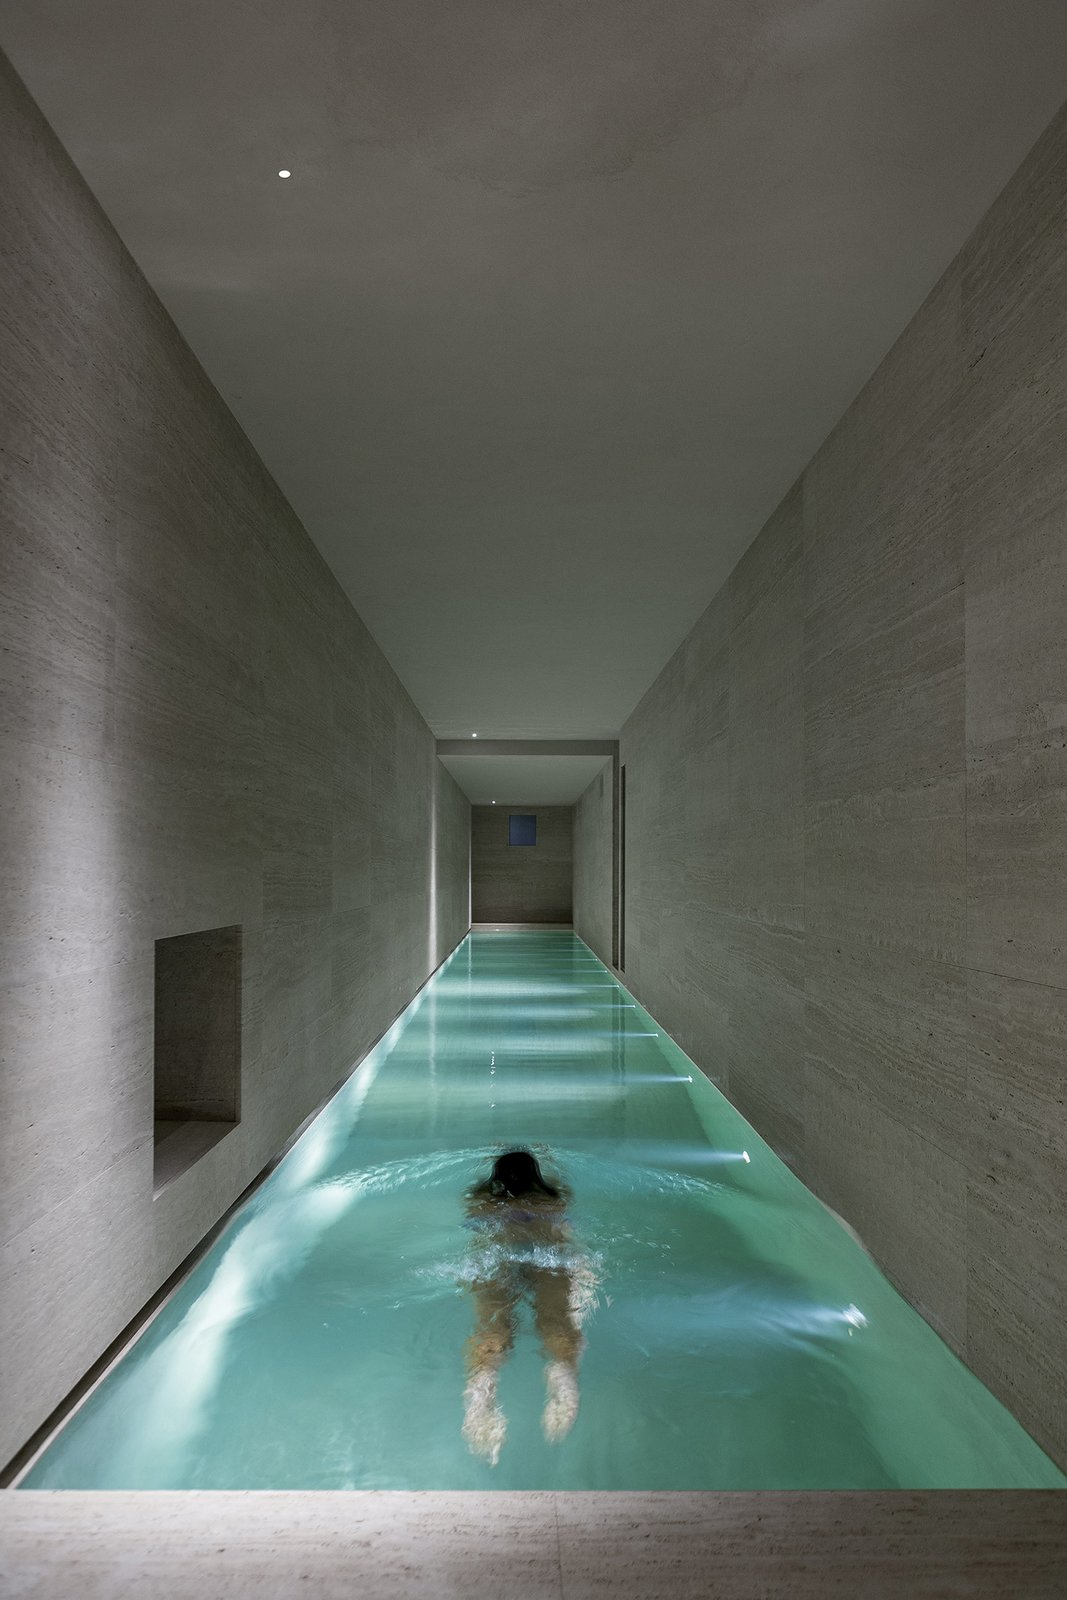 Outdoor and Lap Pools, Tubs, Shower  Photos from A Nocturnal Marvel in Montalcino